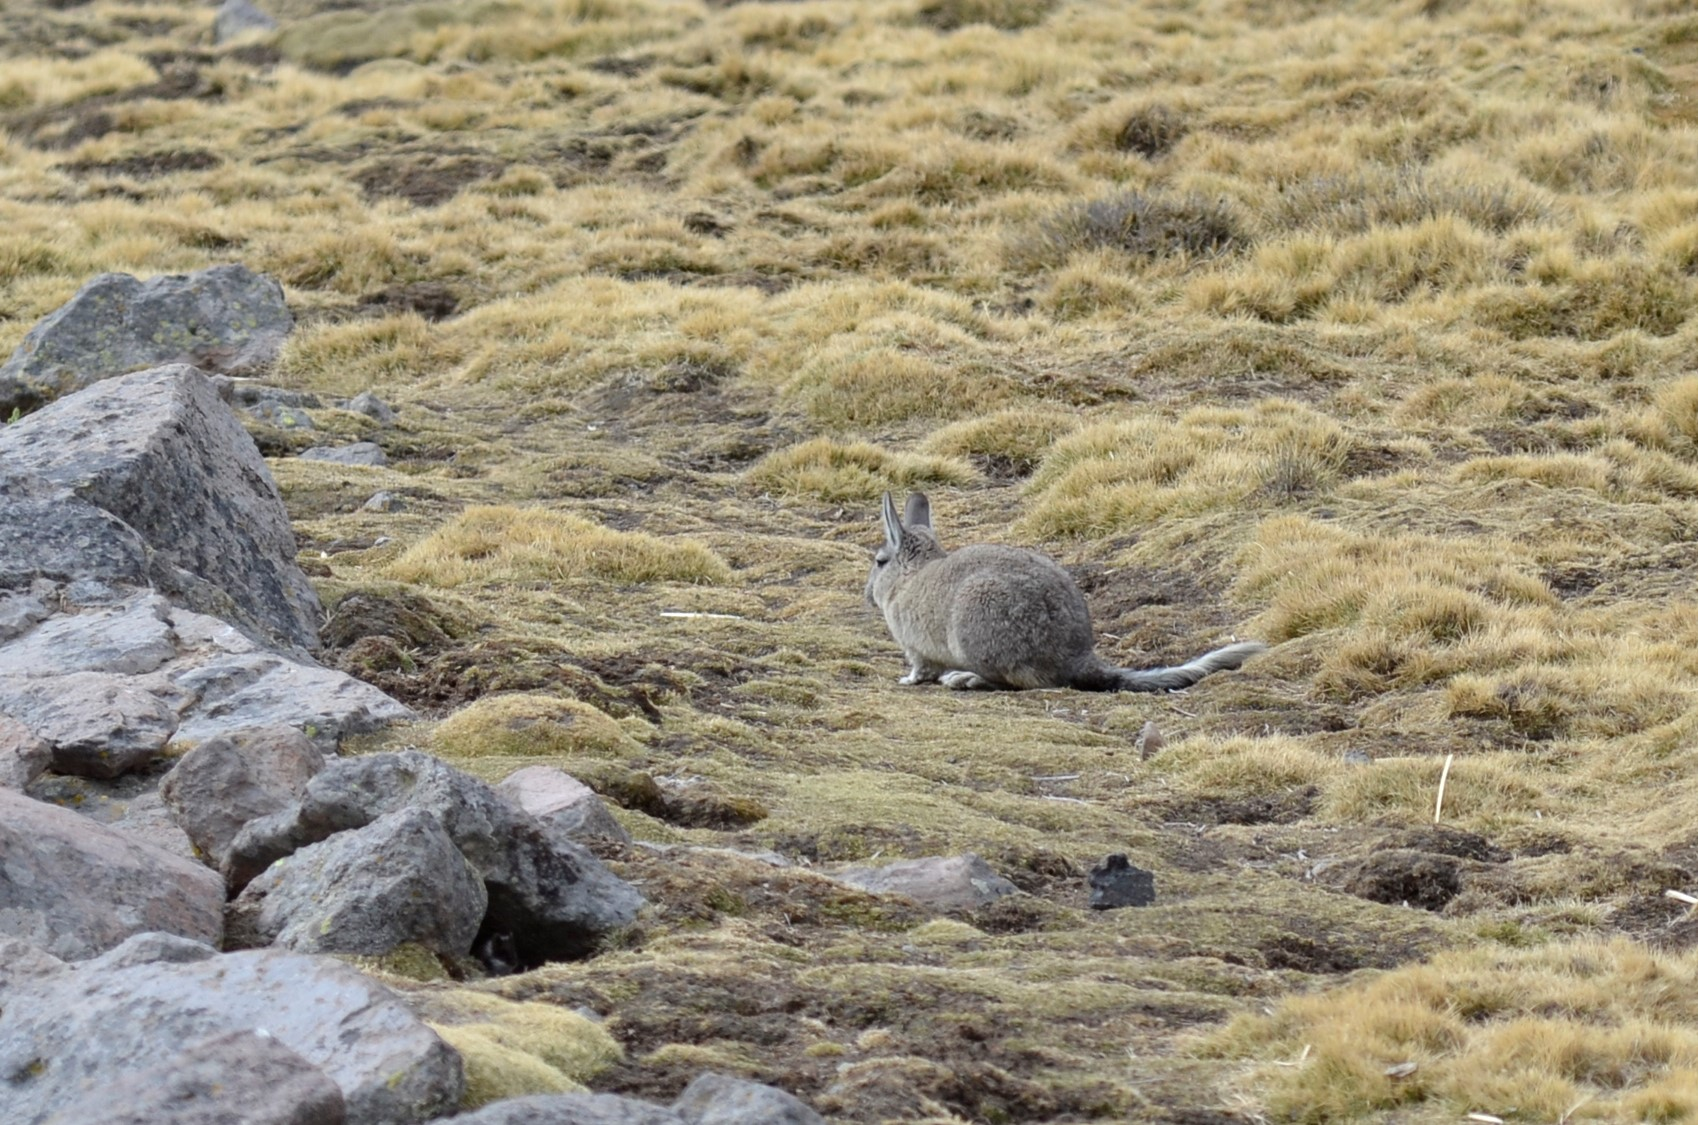 They were hopping all over the rocks but were very difficult to see, given their coloration.